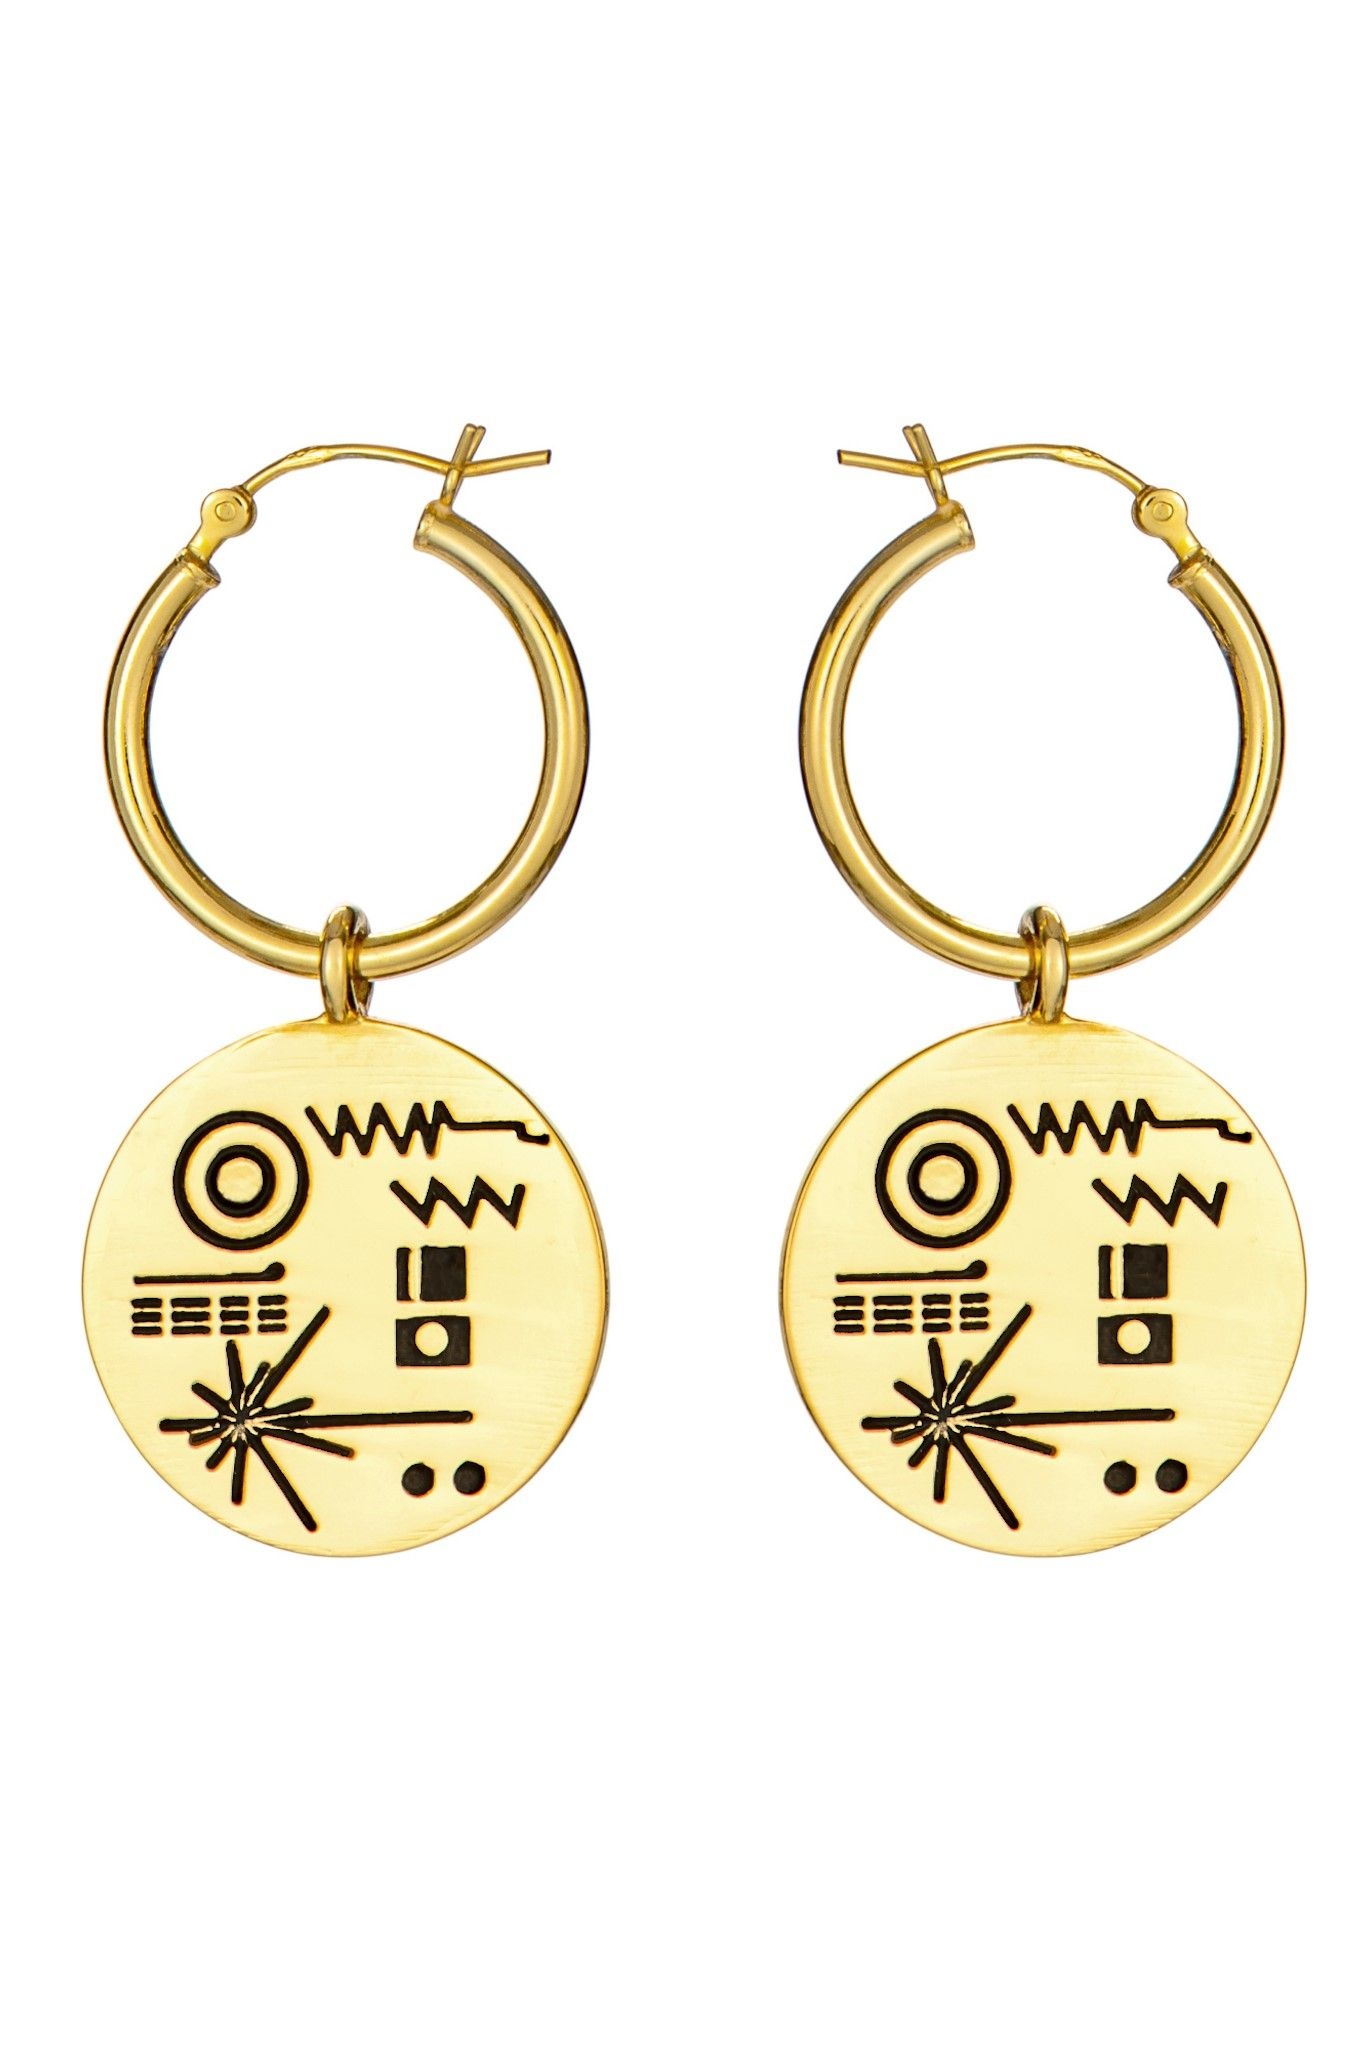 00193f241 Golden Record Earrings | Little Rooms | Earrings, Jewelry ...